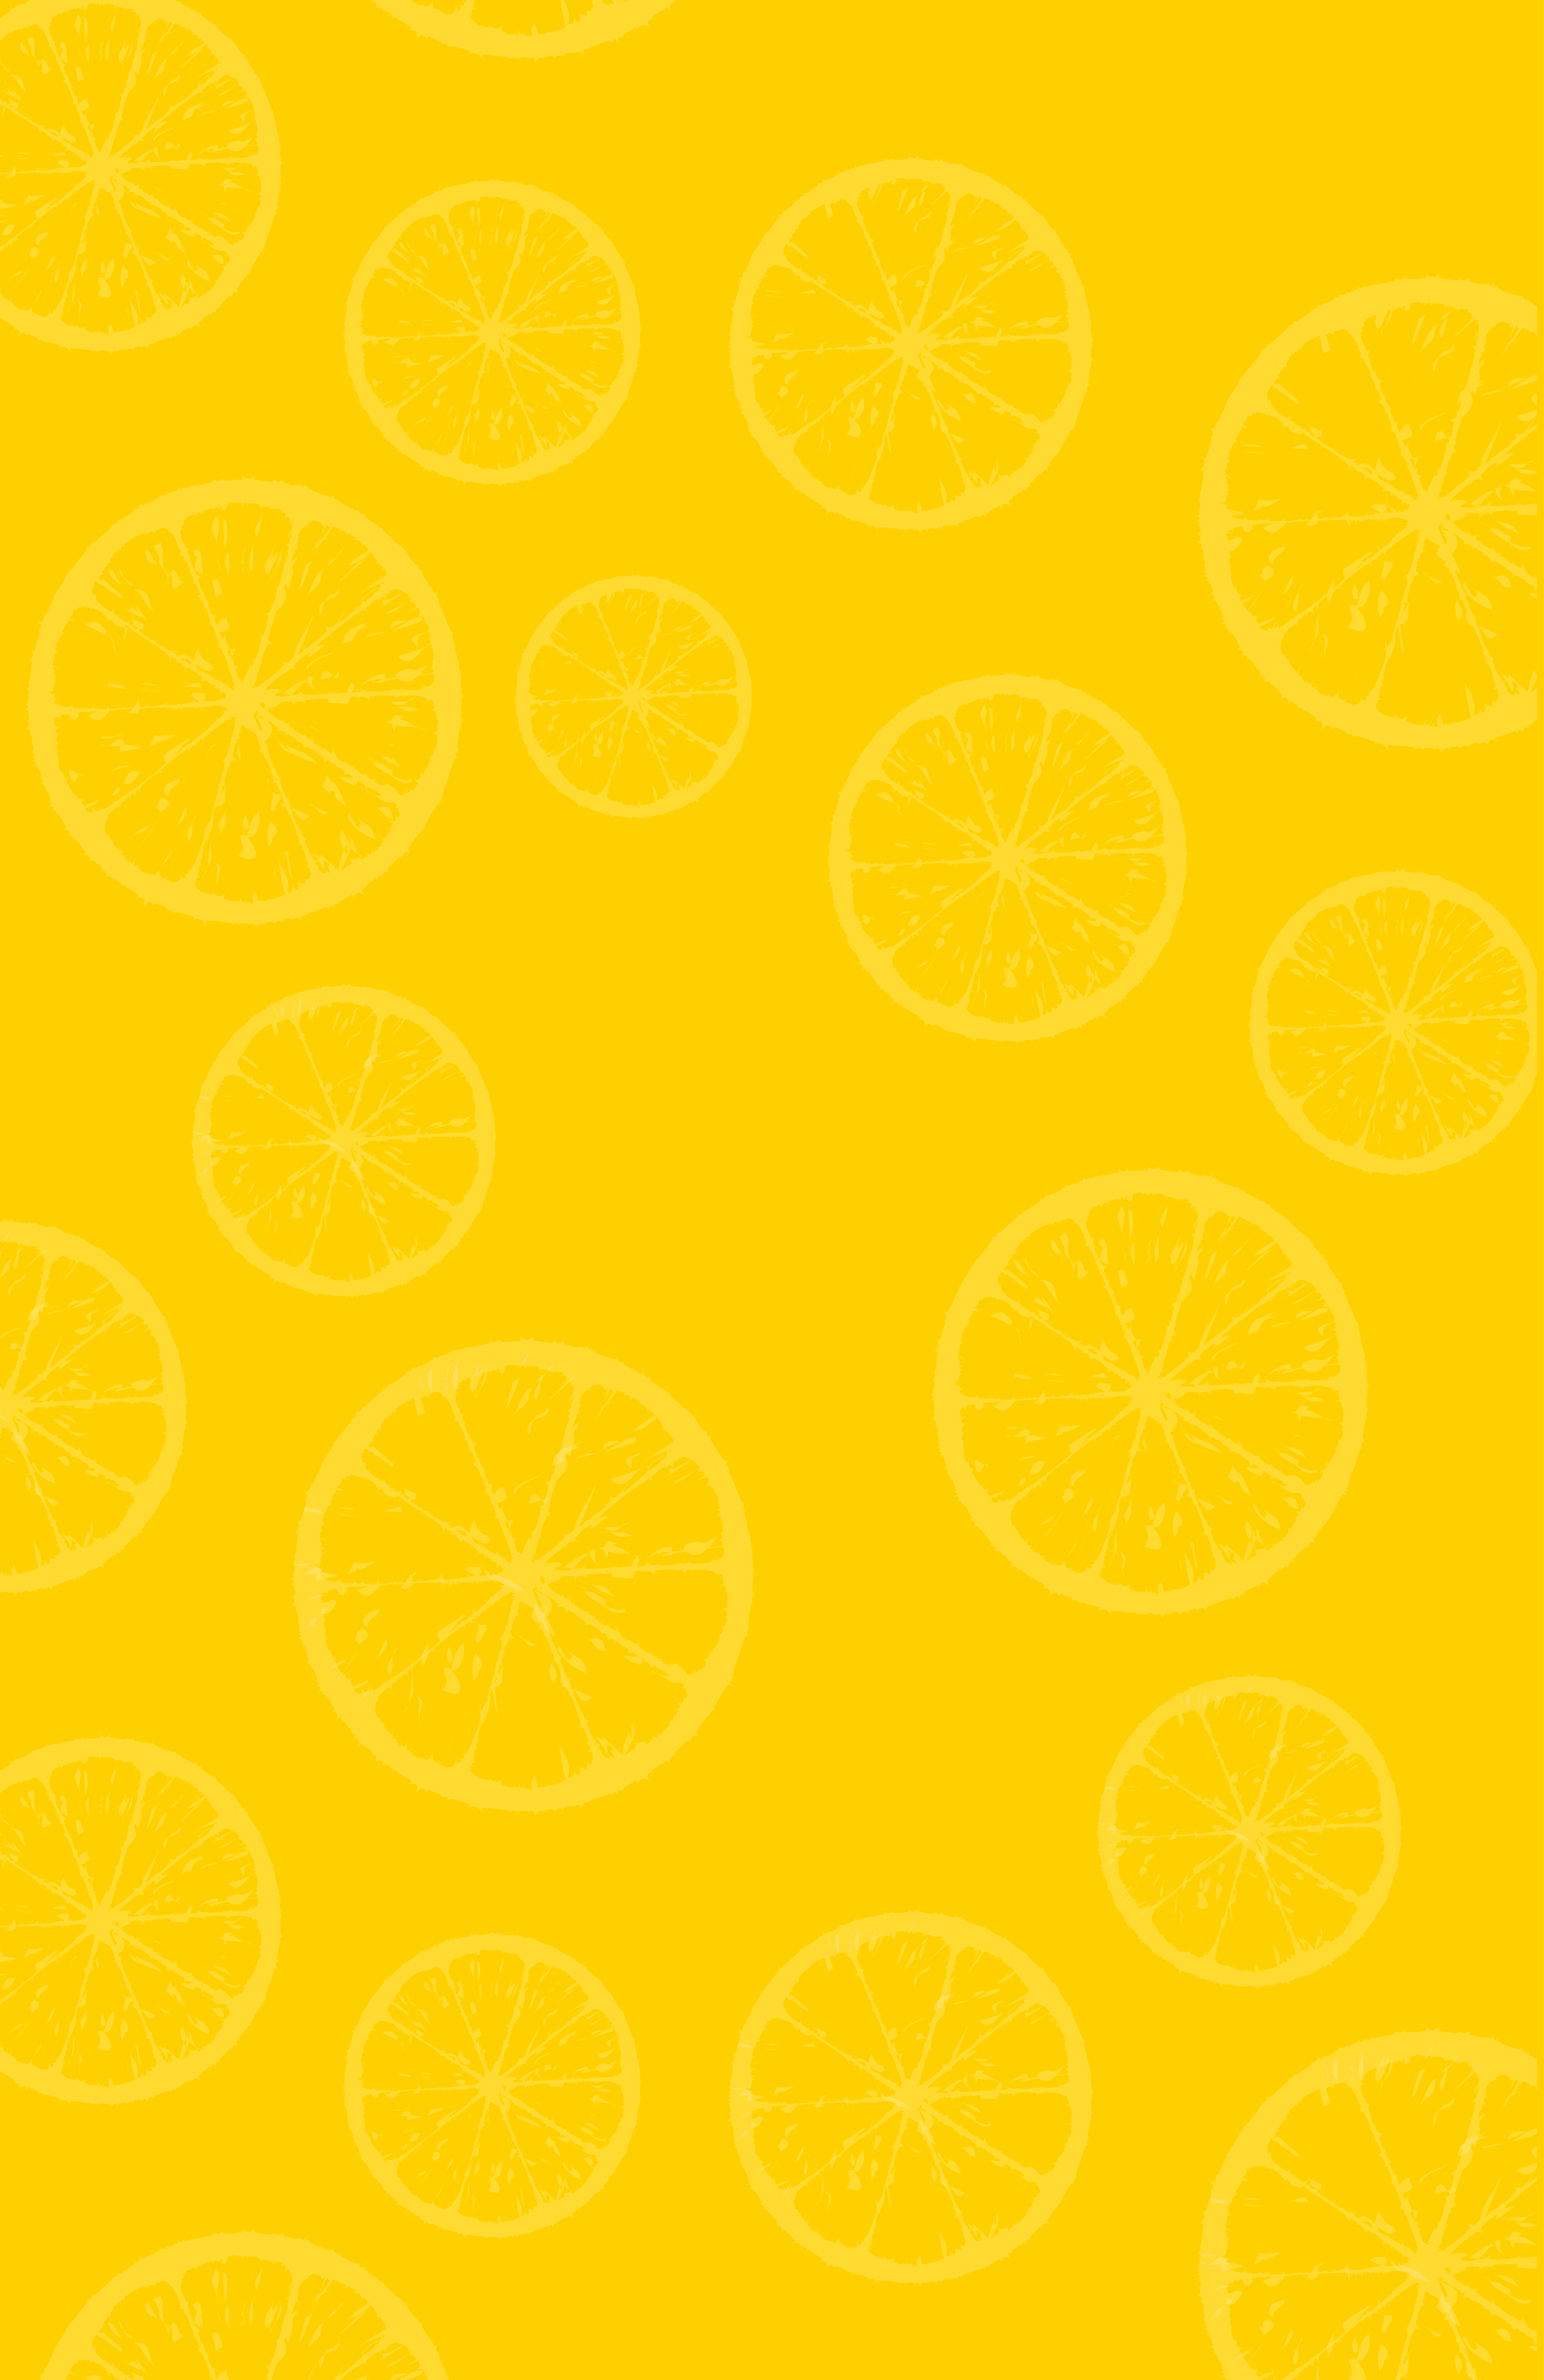 Lemon BG